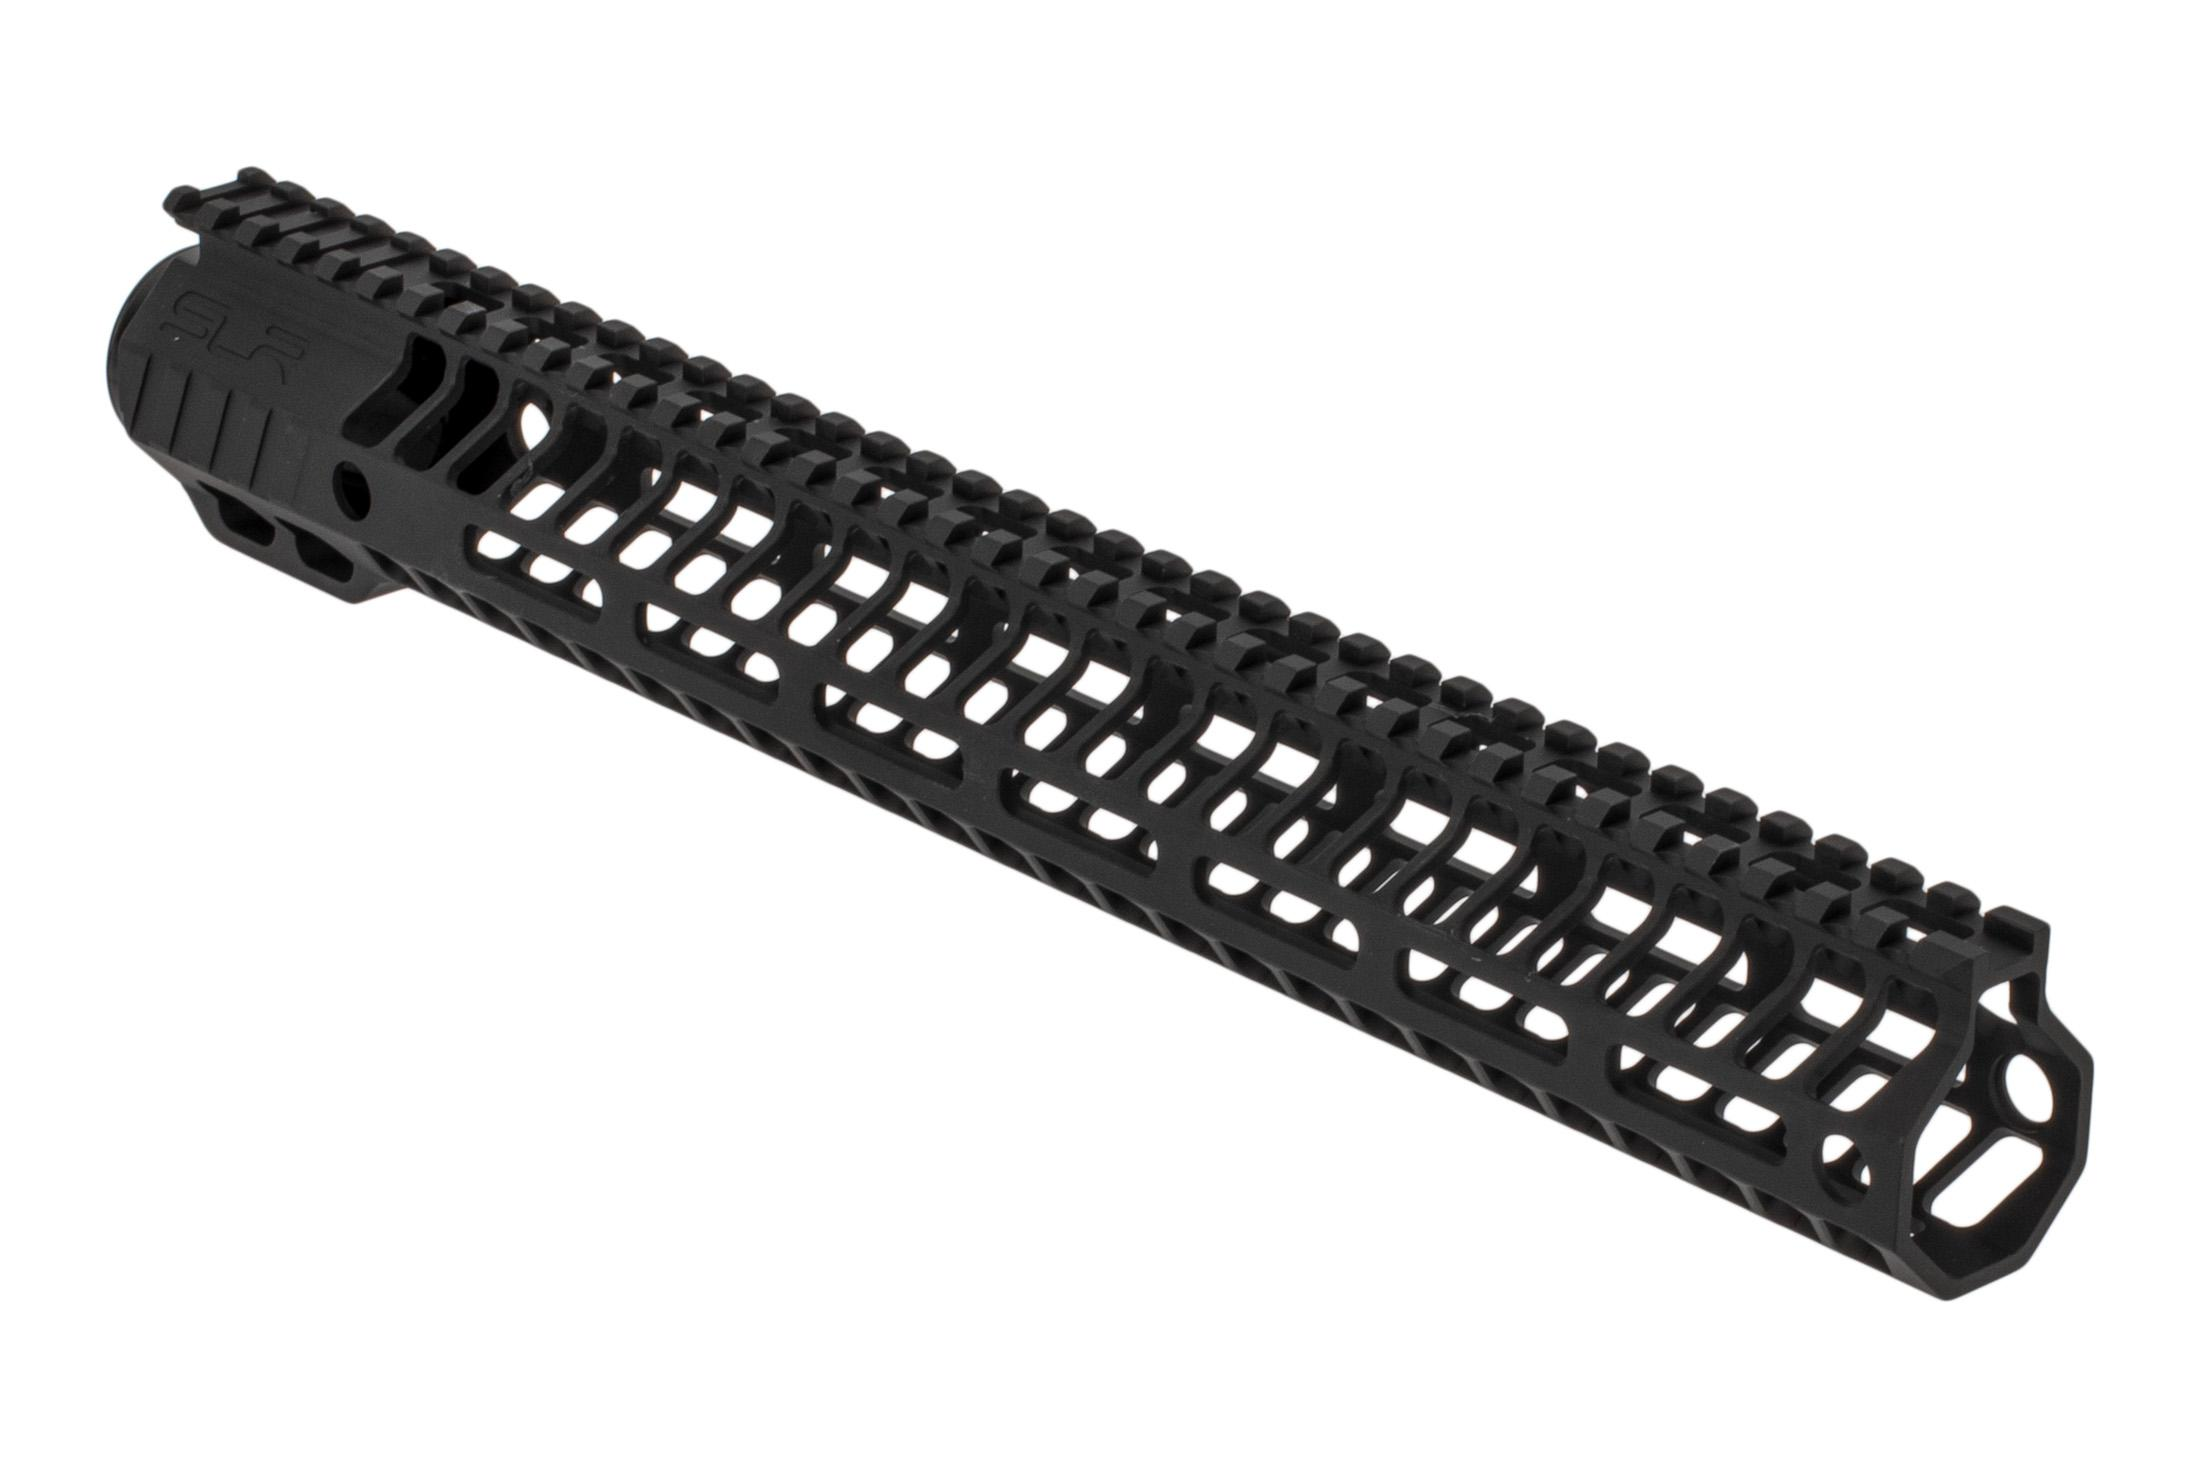 SLR Rifleworks HELIX series 14.87 M-LOK rail for the AR-15 with full length top rail with black anodized finish.